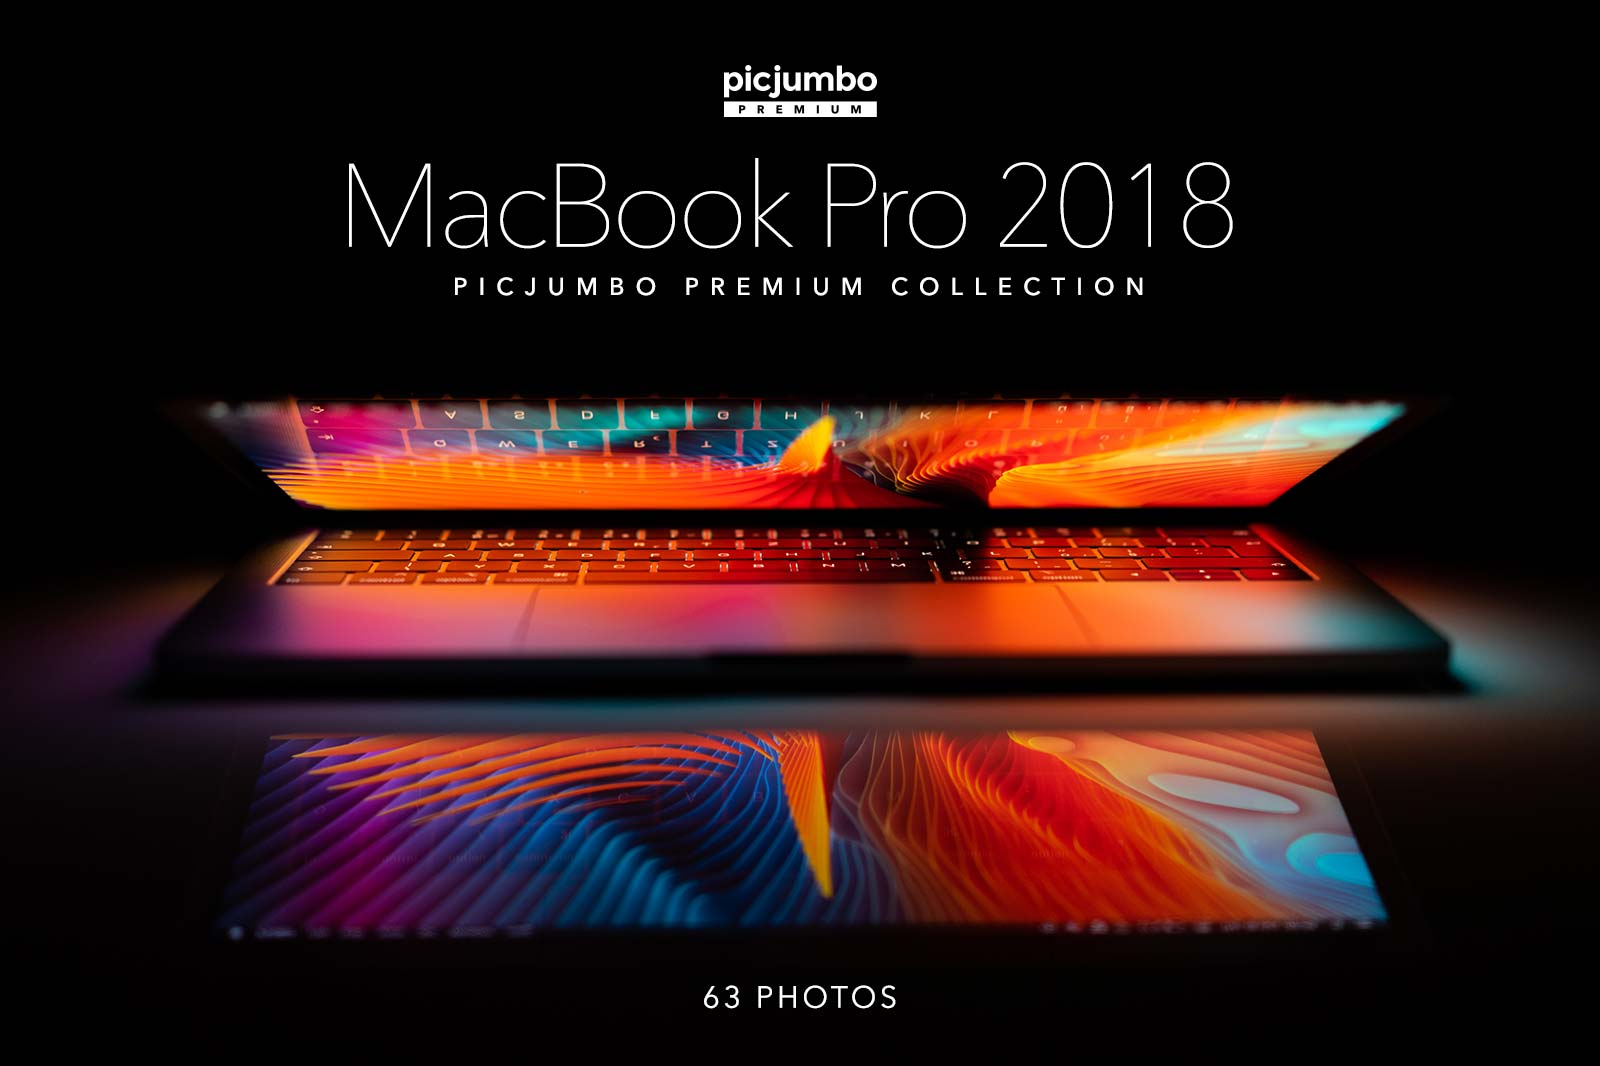 macbook-pro-2018-photos.jpg